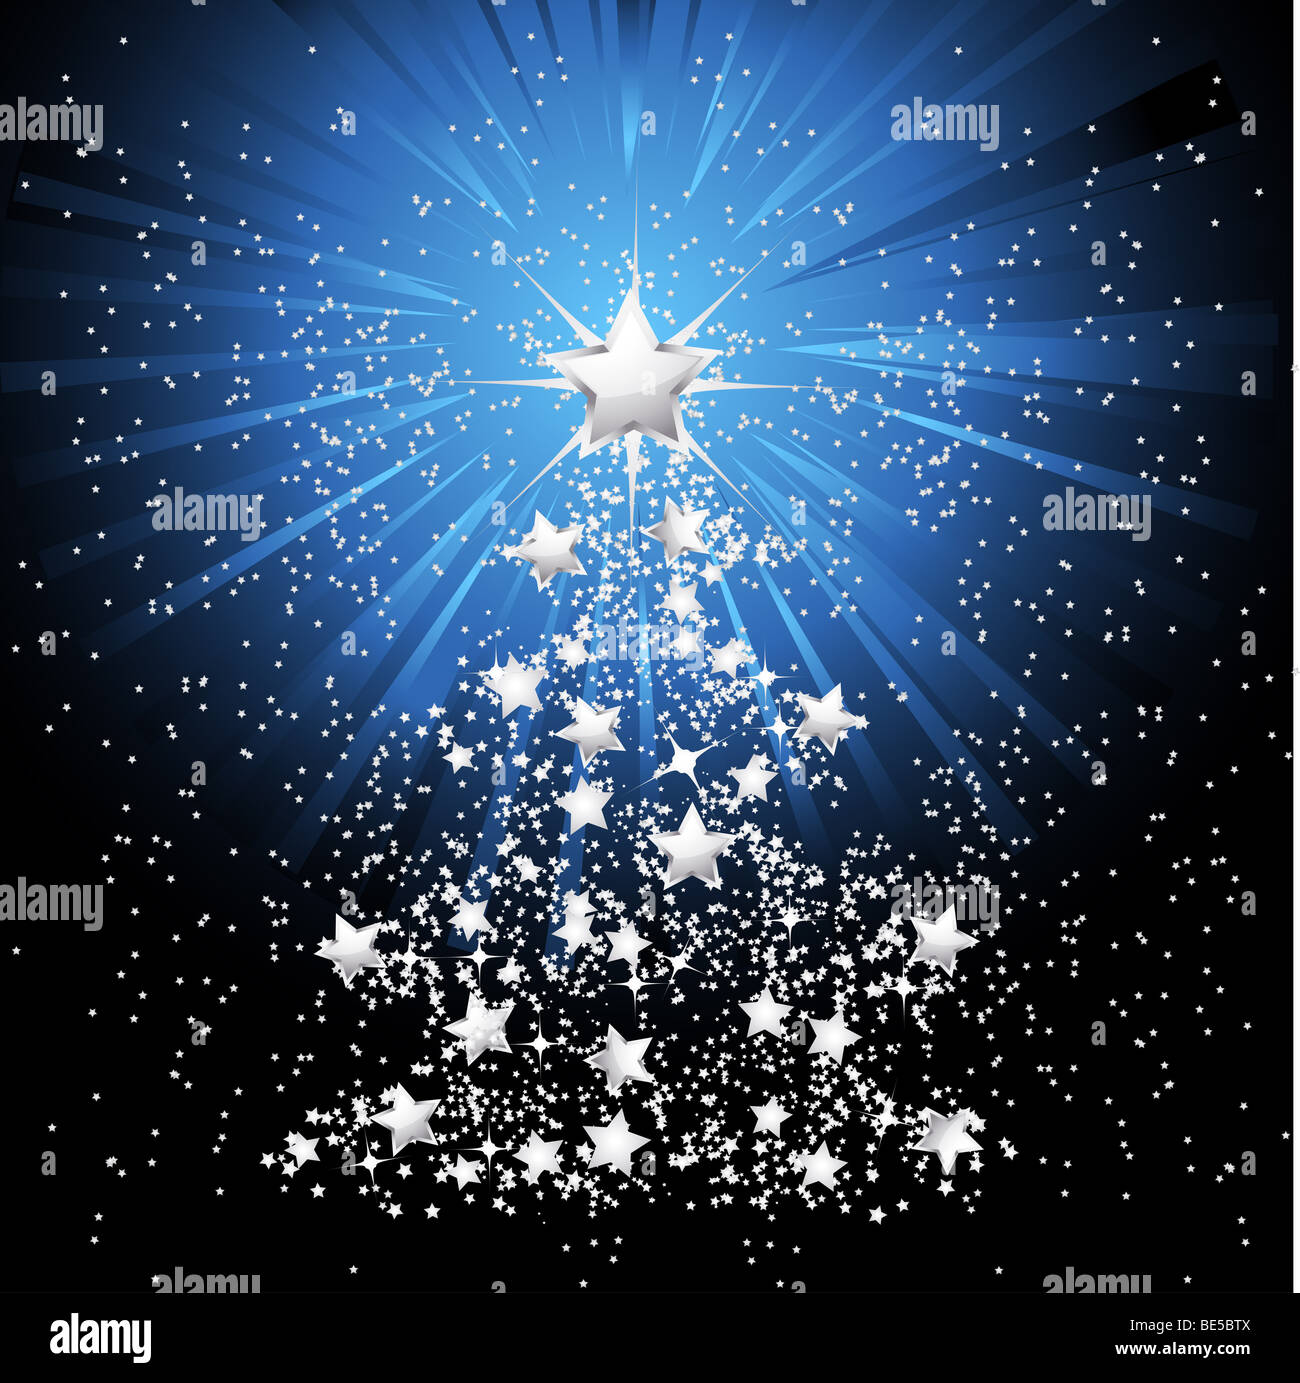 silver starry christmas tree with light bursting out from main star stock image - Starry Christmas